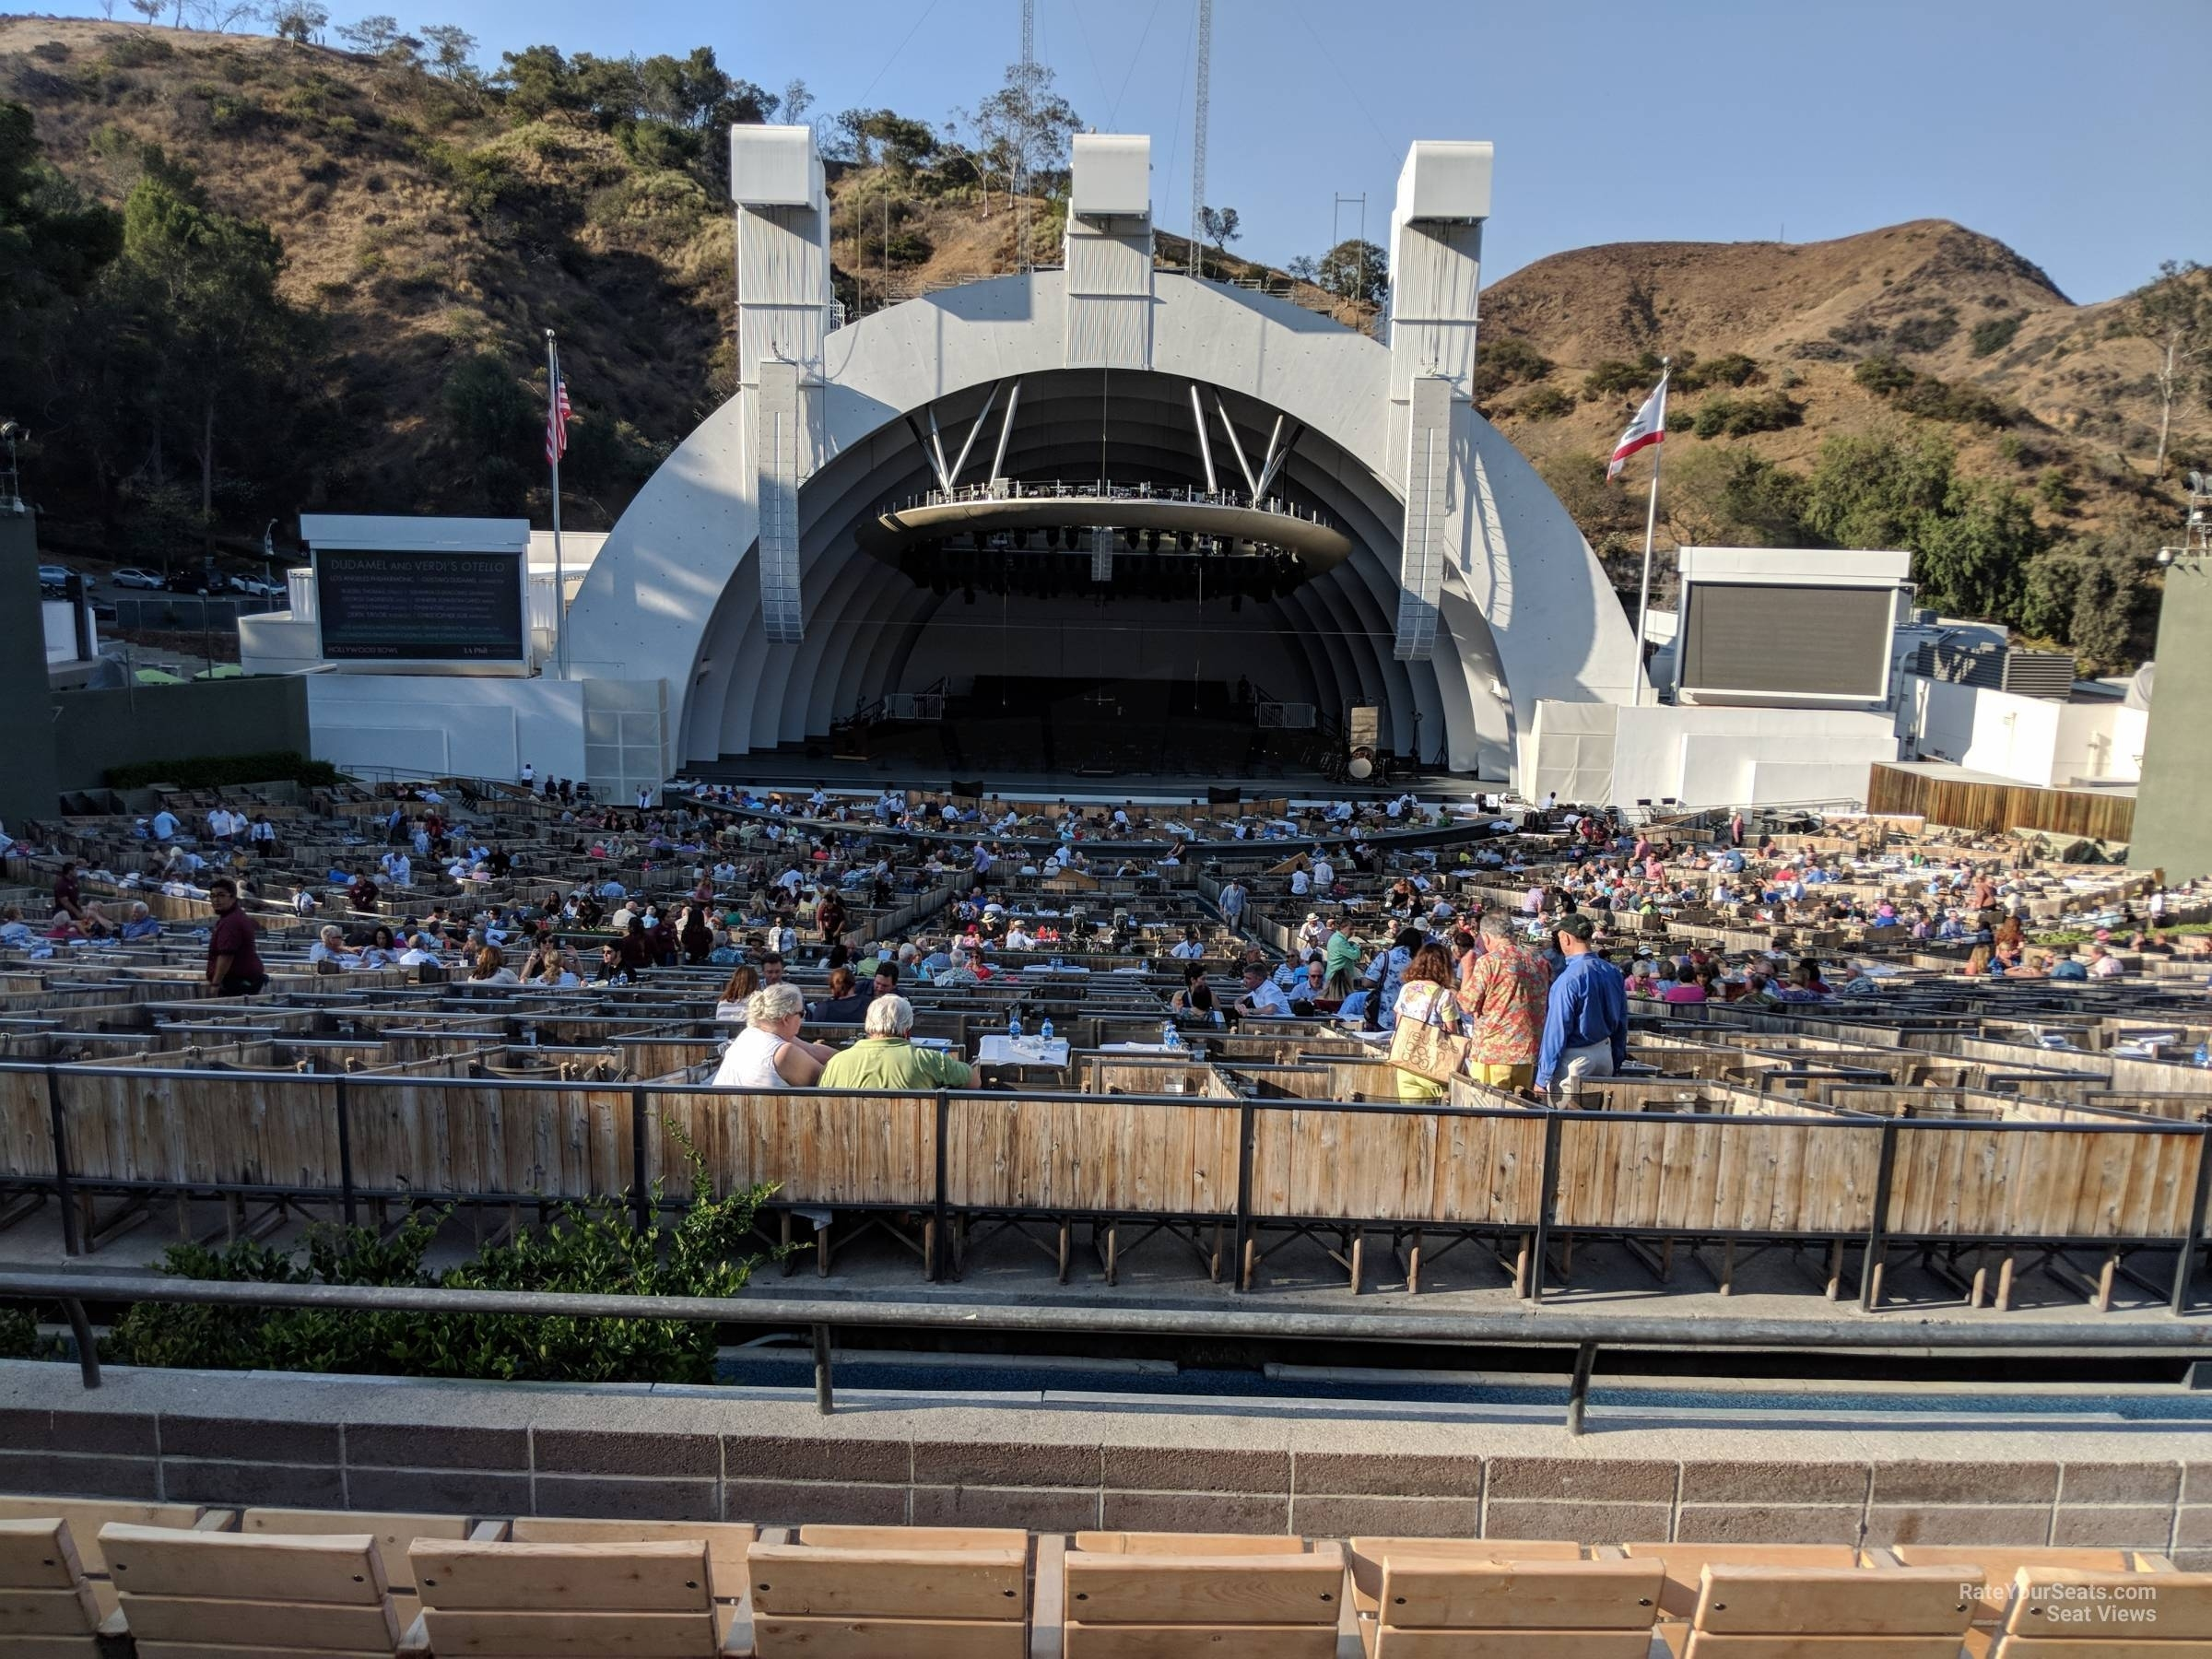 Hollywood Bowl Section H - Rateyourseats with regard to Hollywood Bowl Seating Chart Super Seats